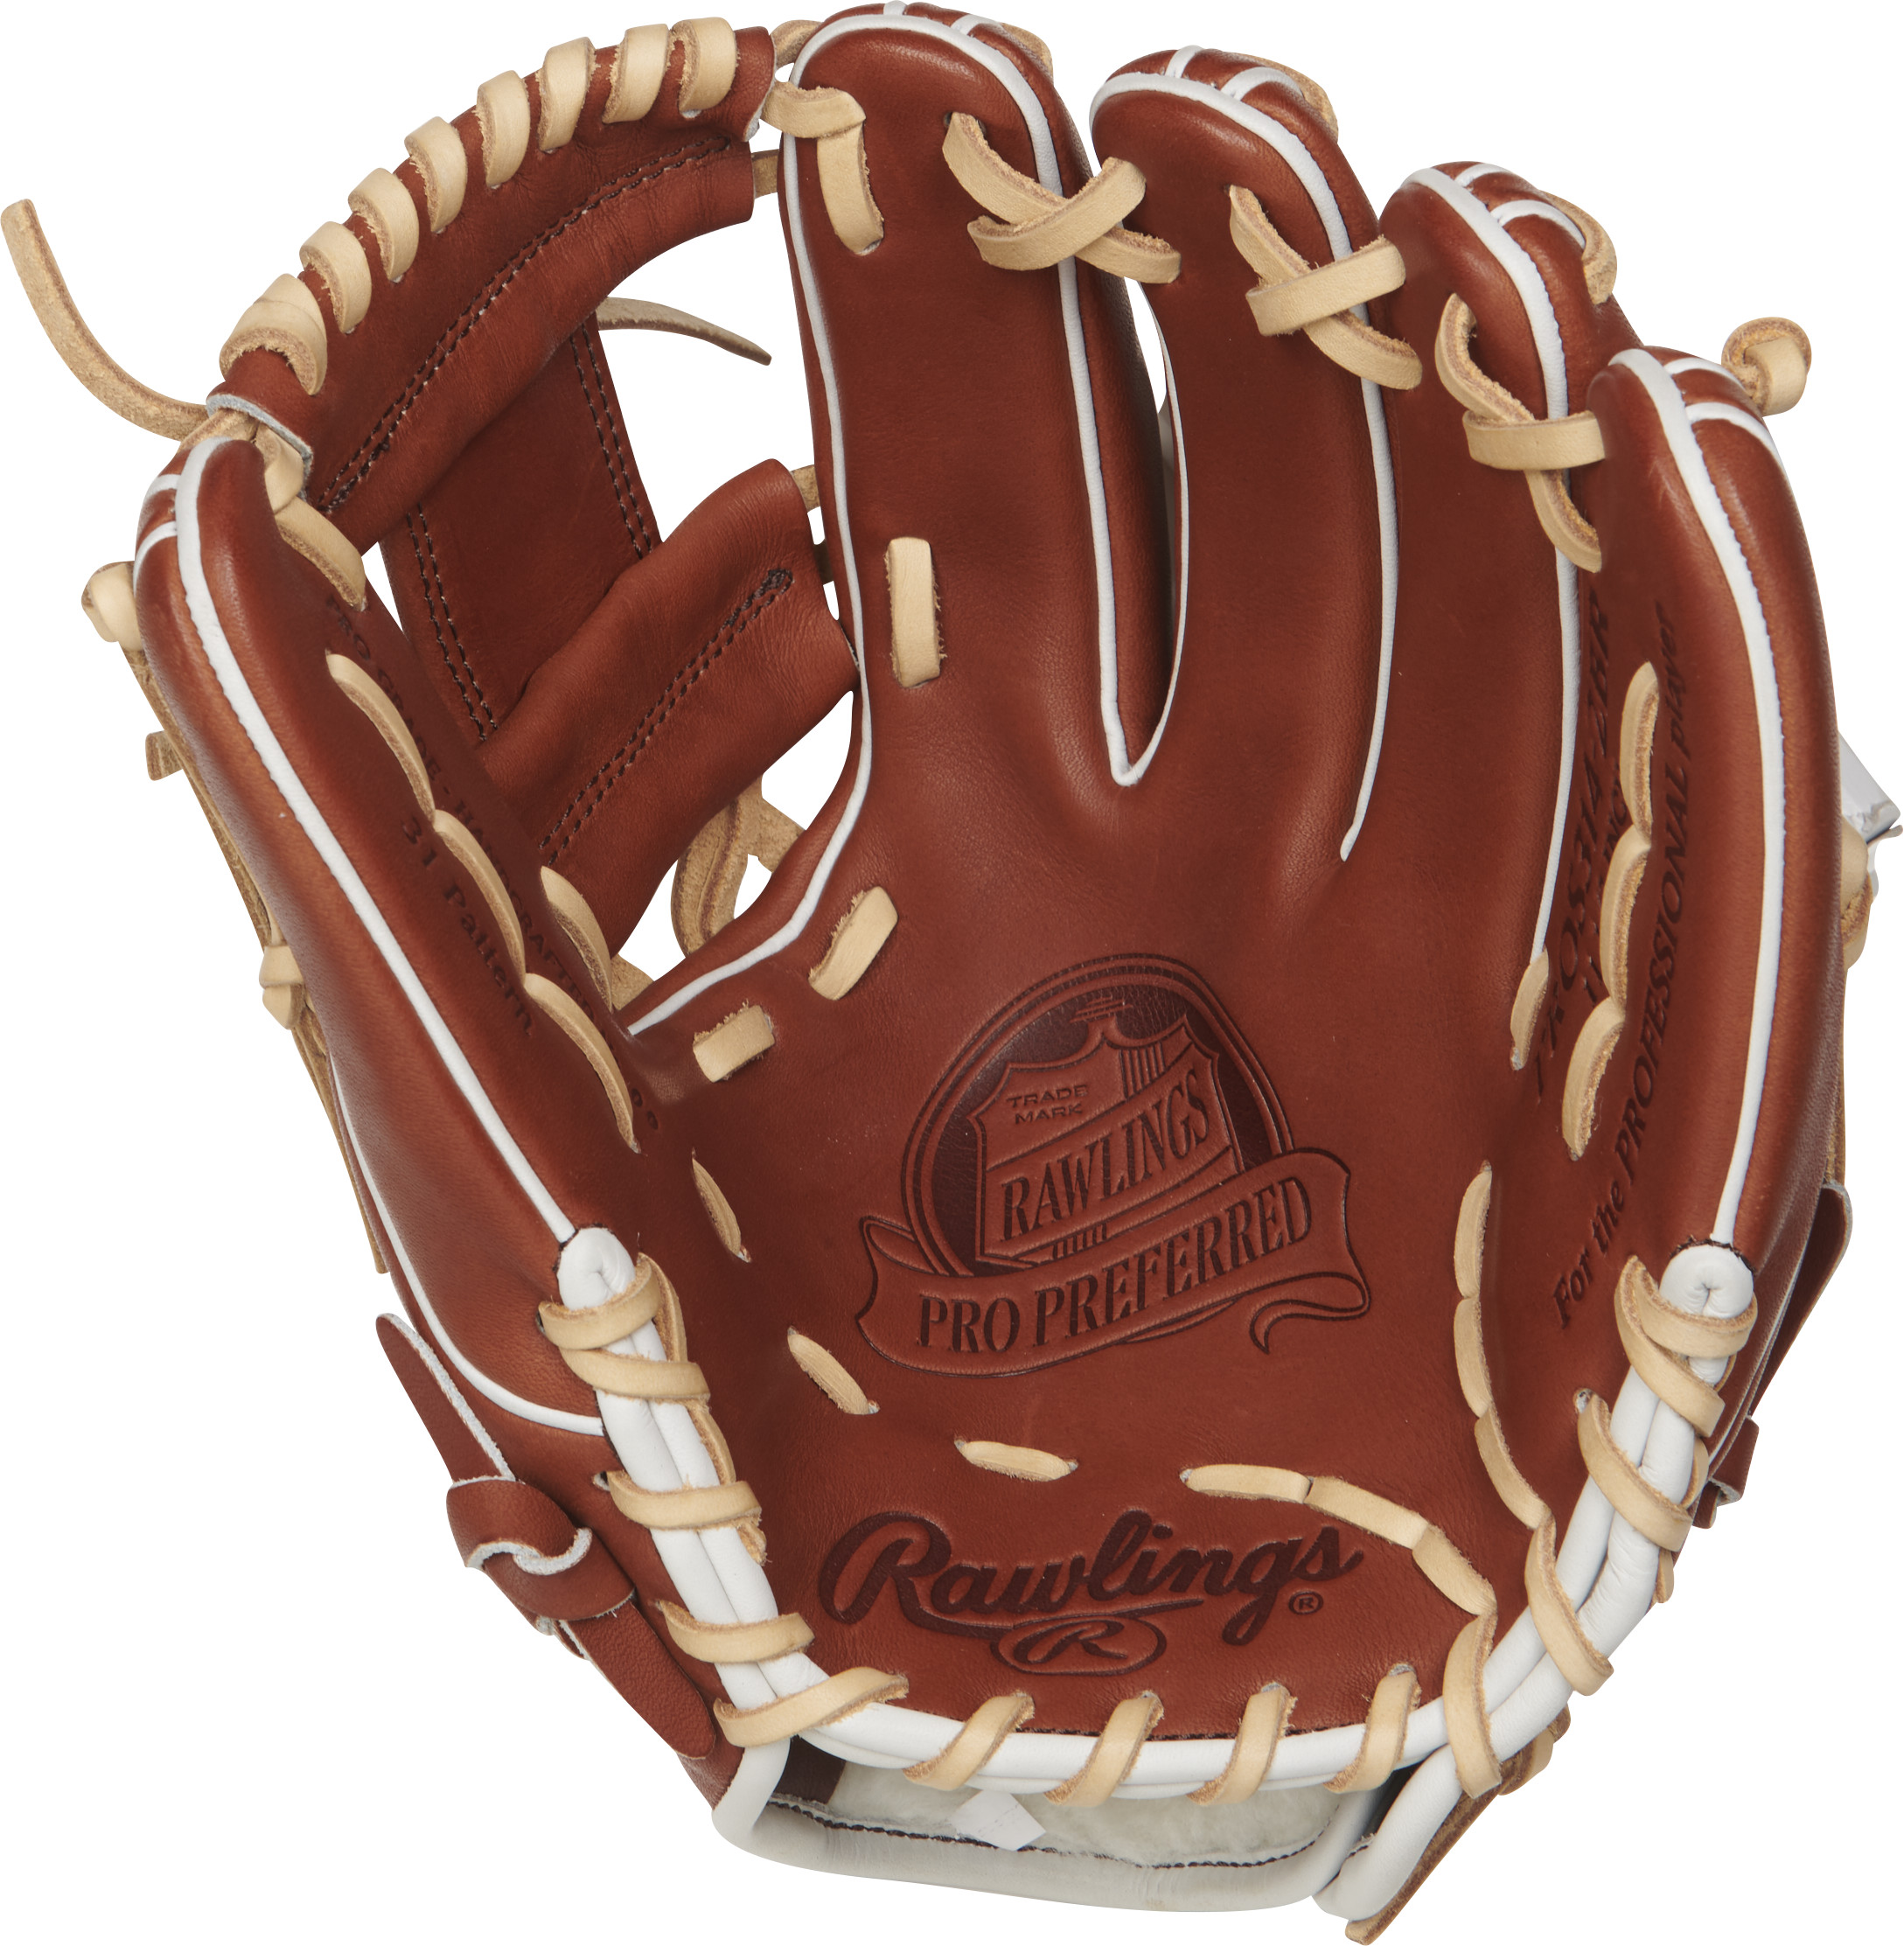 http://www.bestbatdeals.com/images/gloves/rawlings/PROS314-2BR-1.jpg